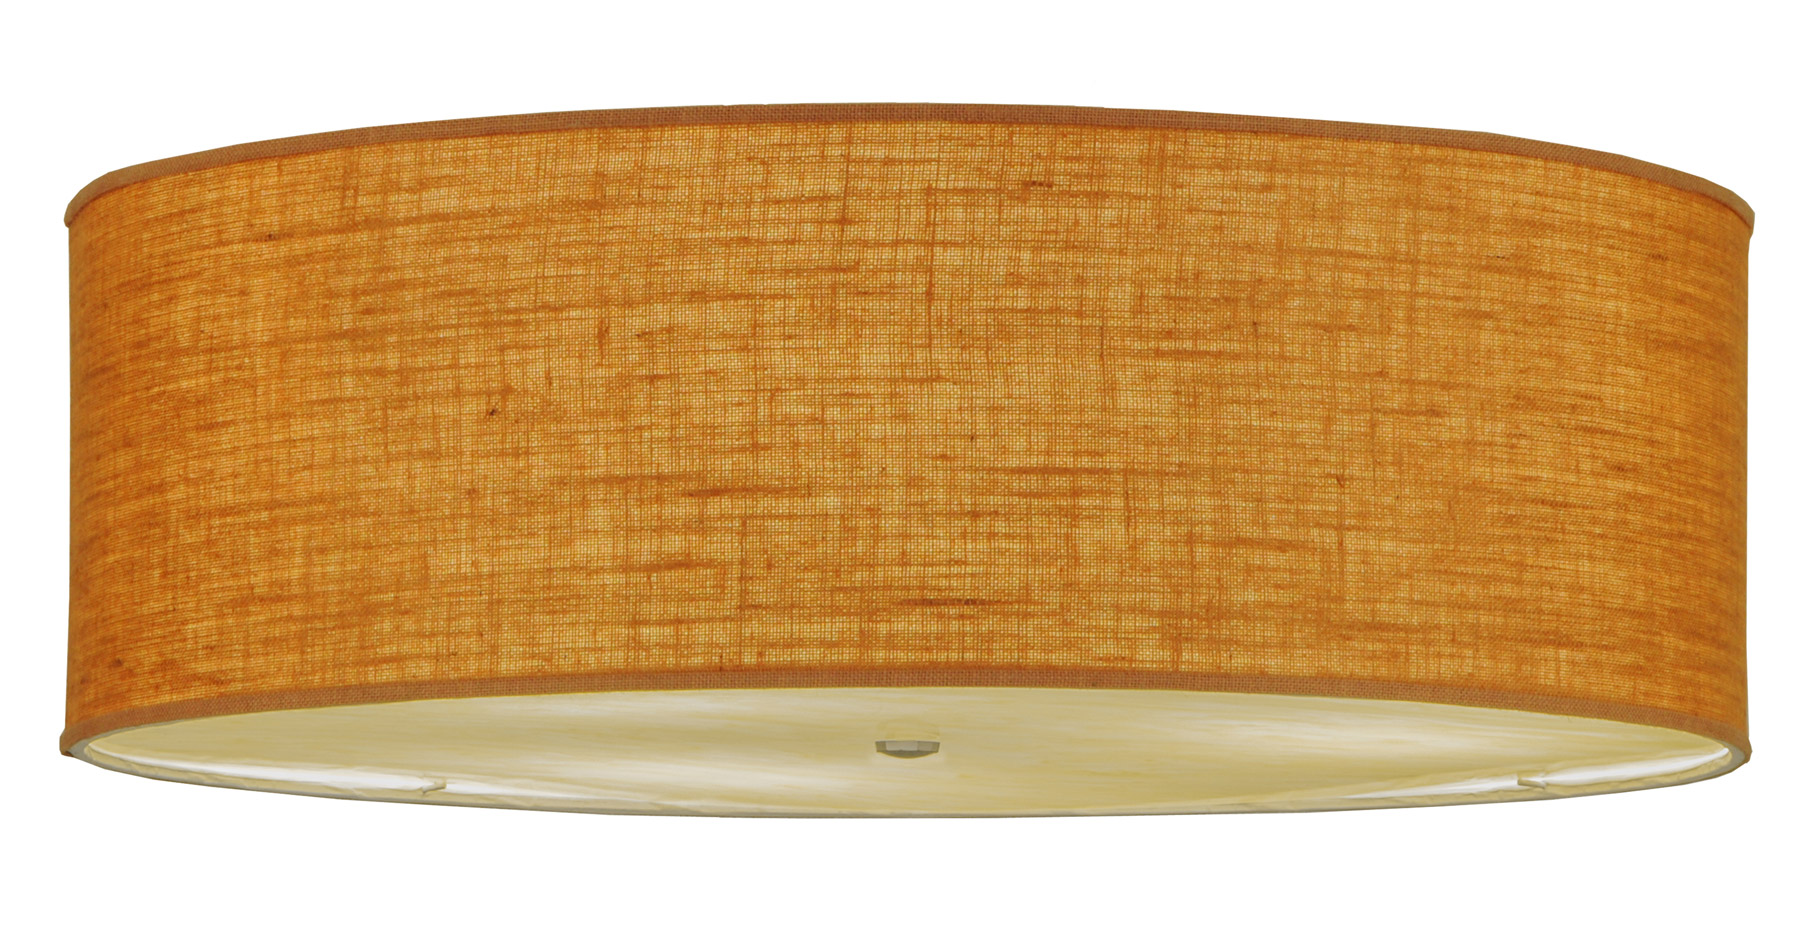 145004 cilindro copper burlap dimmable flush mount meyda 145004 cilindro copper burlap dimmable flush mount arubaitofo Images